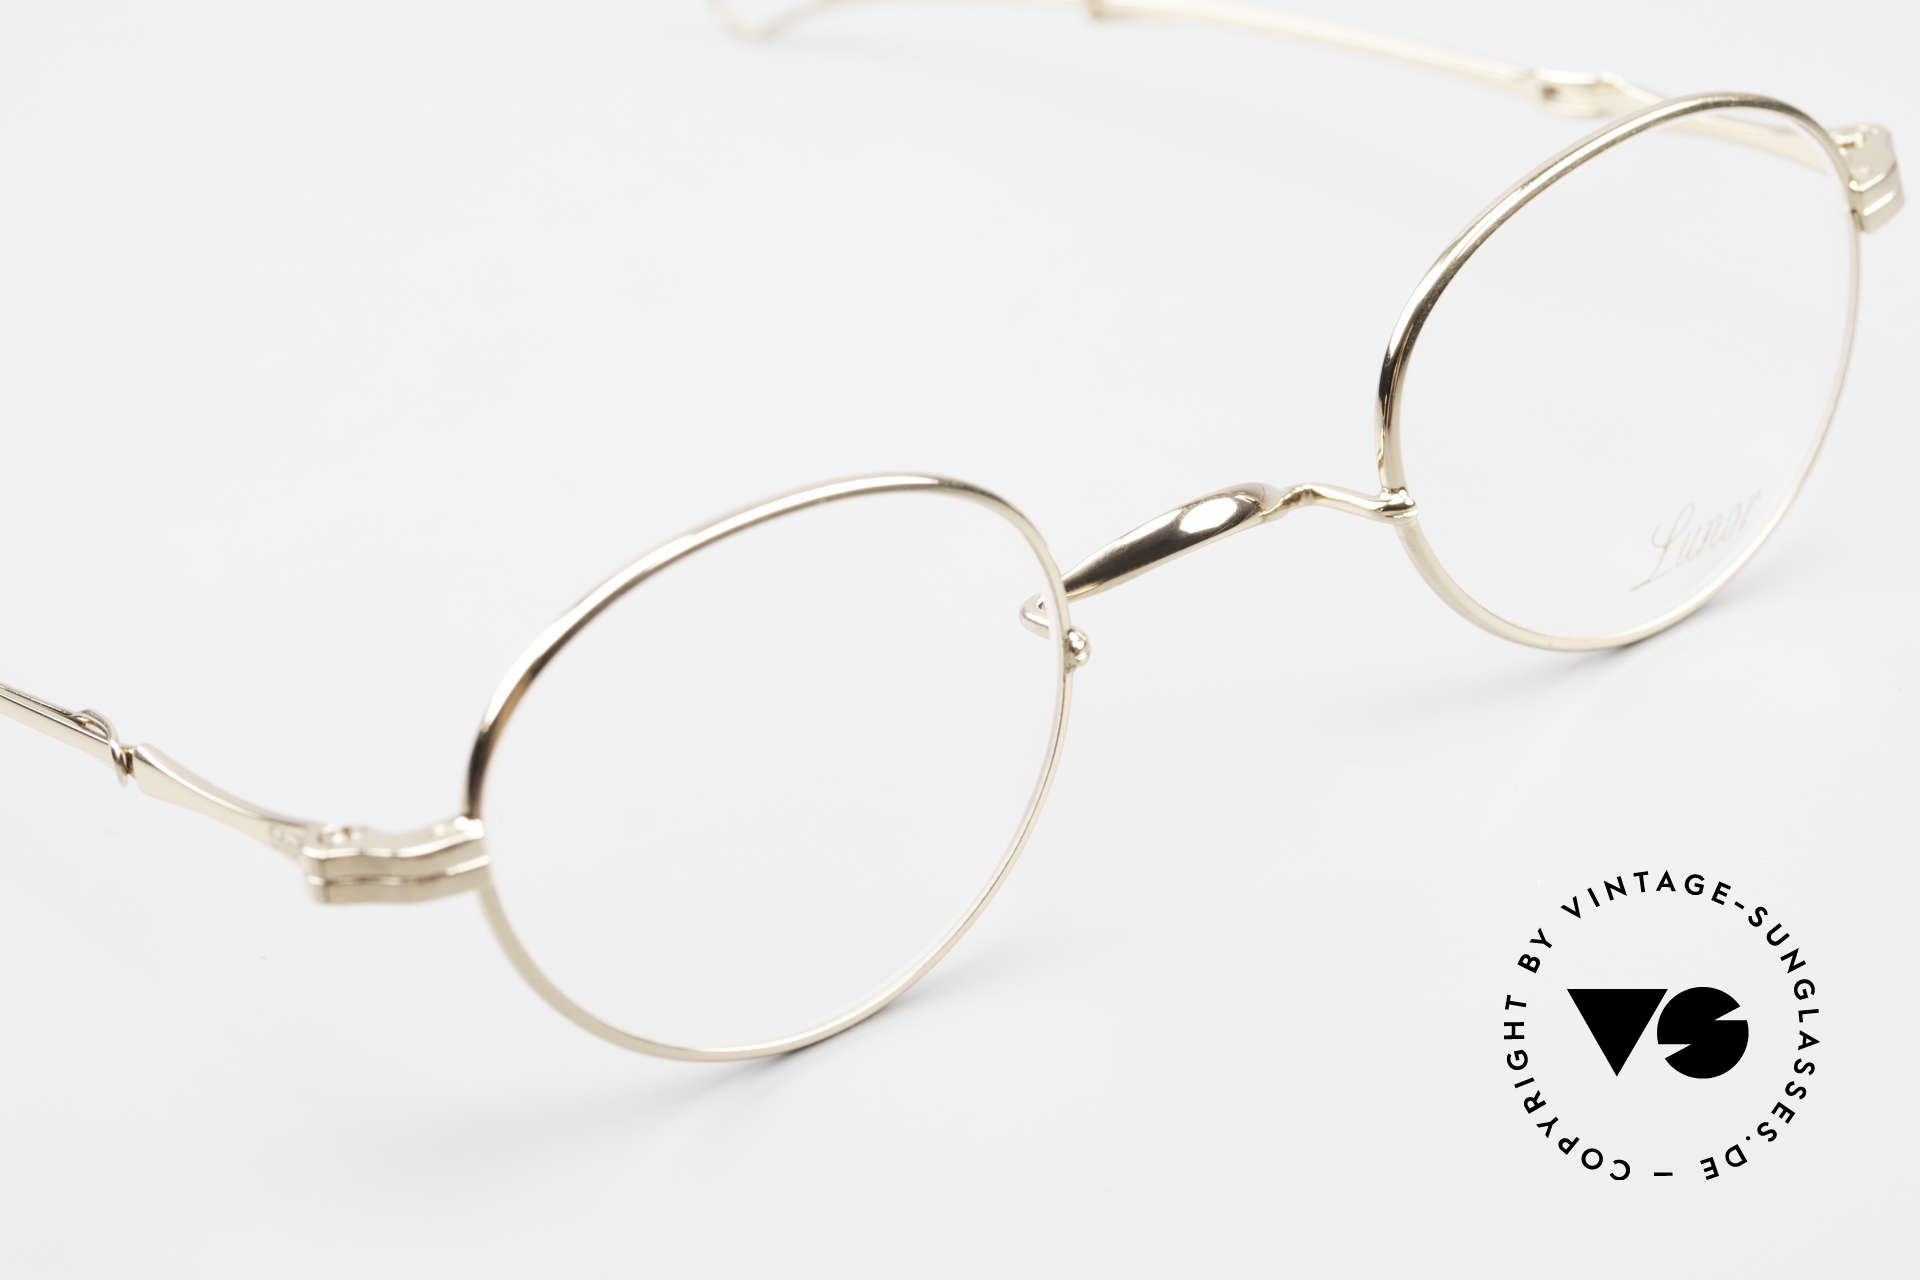 Lunor I 20 Telescopic Sliding Temples Gold Plated, a highlight for all eyewear lovers; small size 41/26, Made for Men and Women